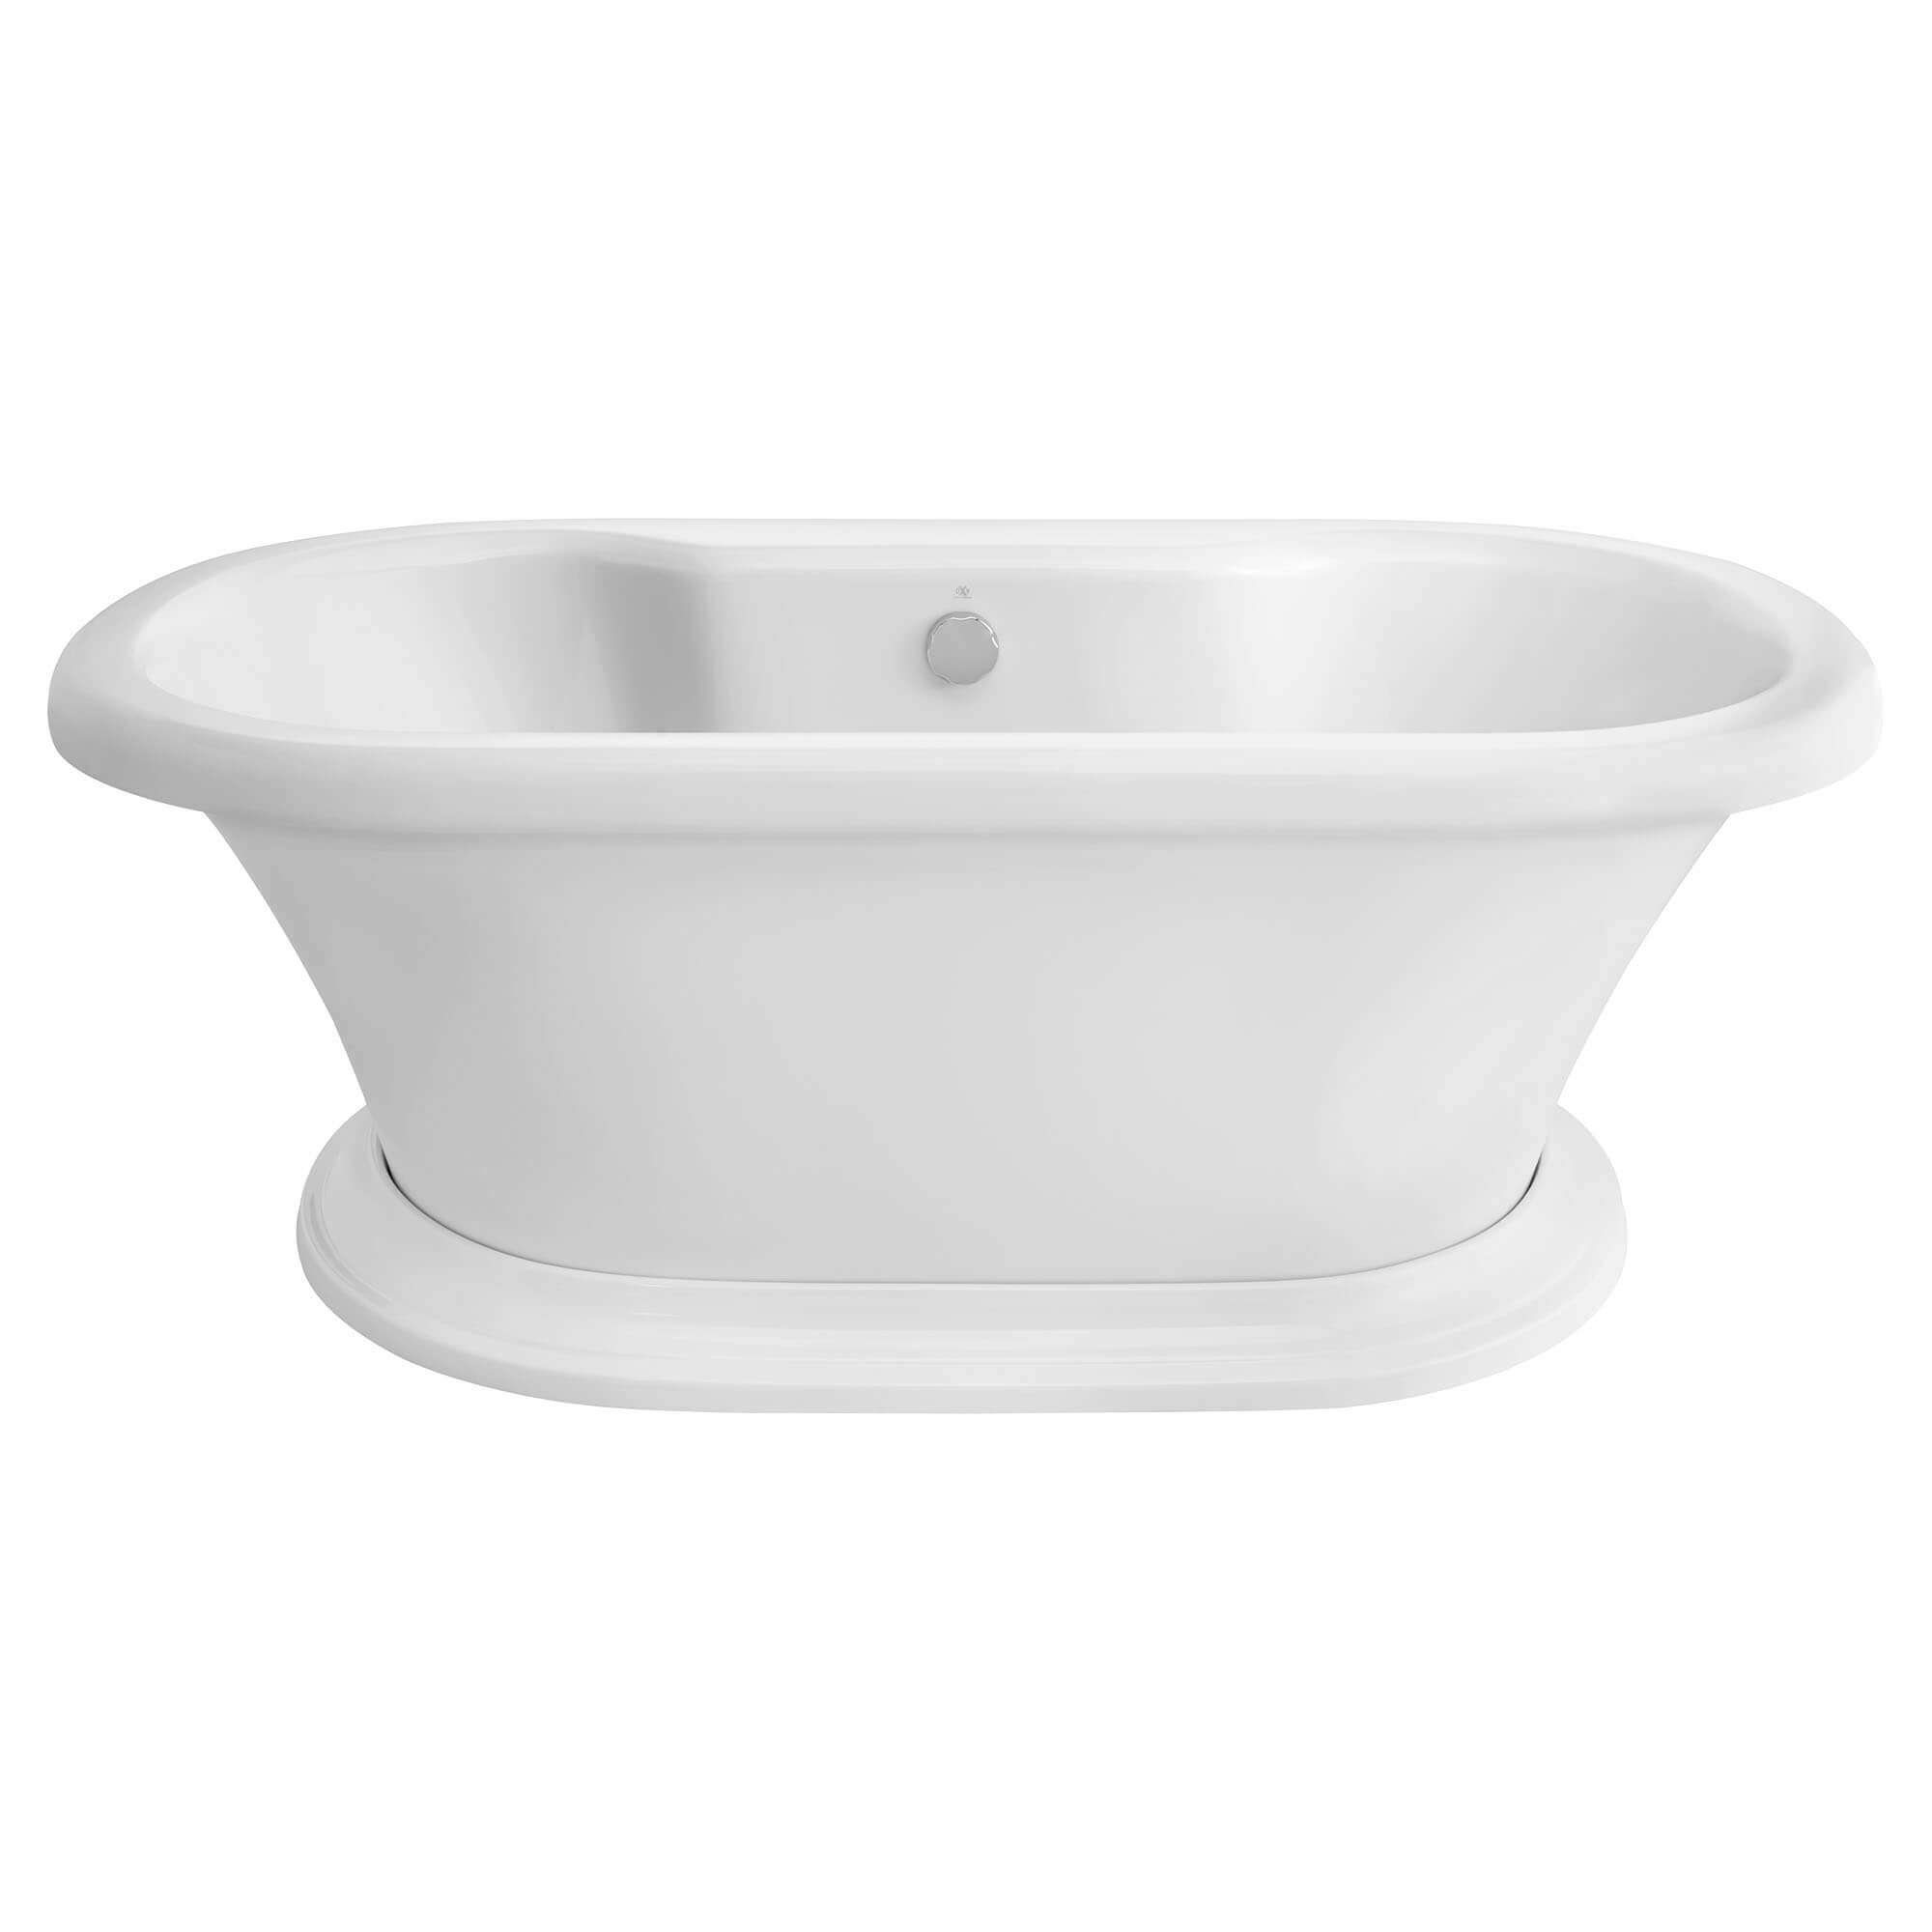 St. George Freestanding Soaking Tub with Deck- Canvas White